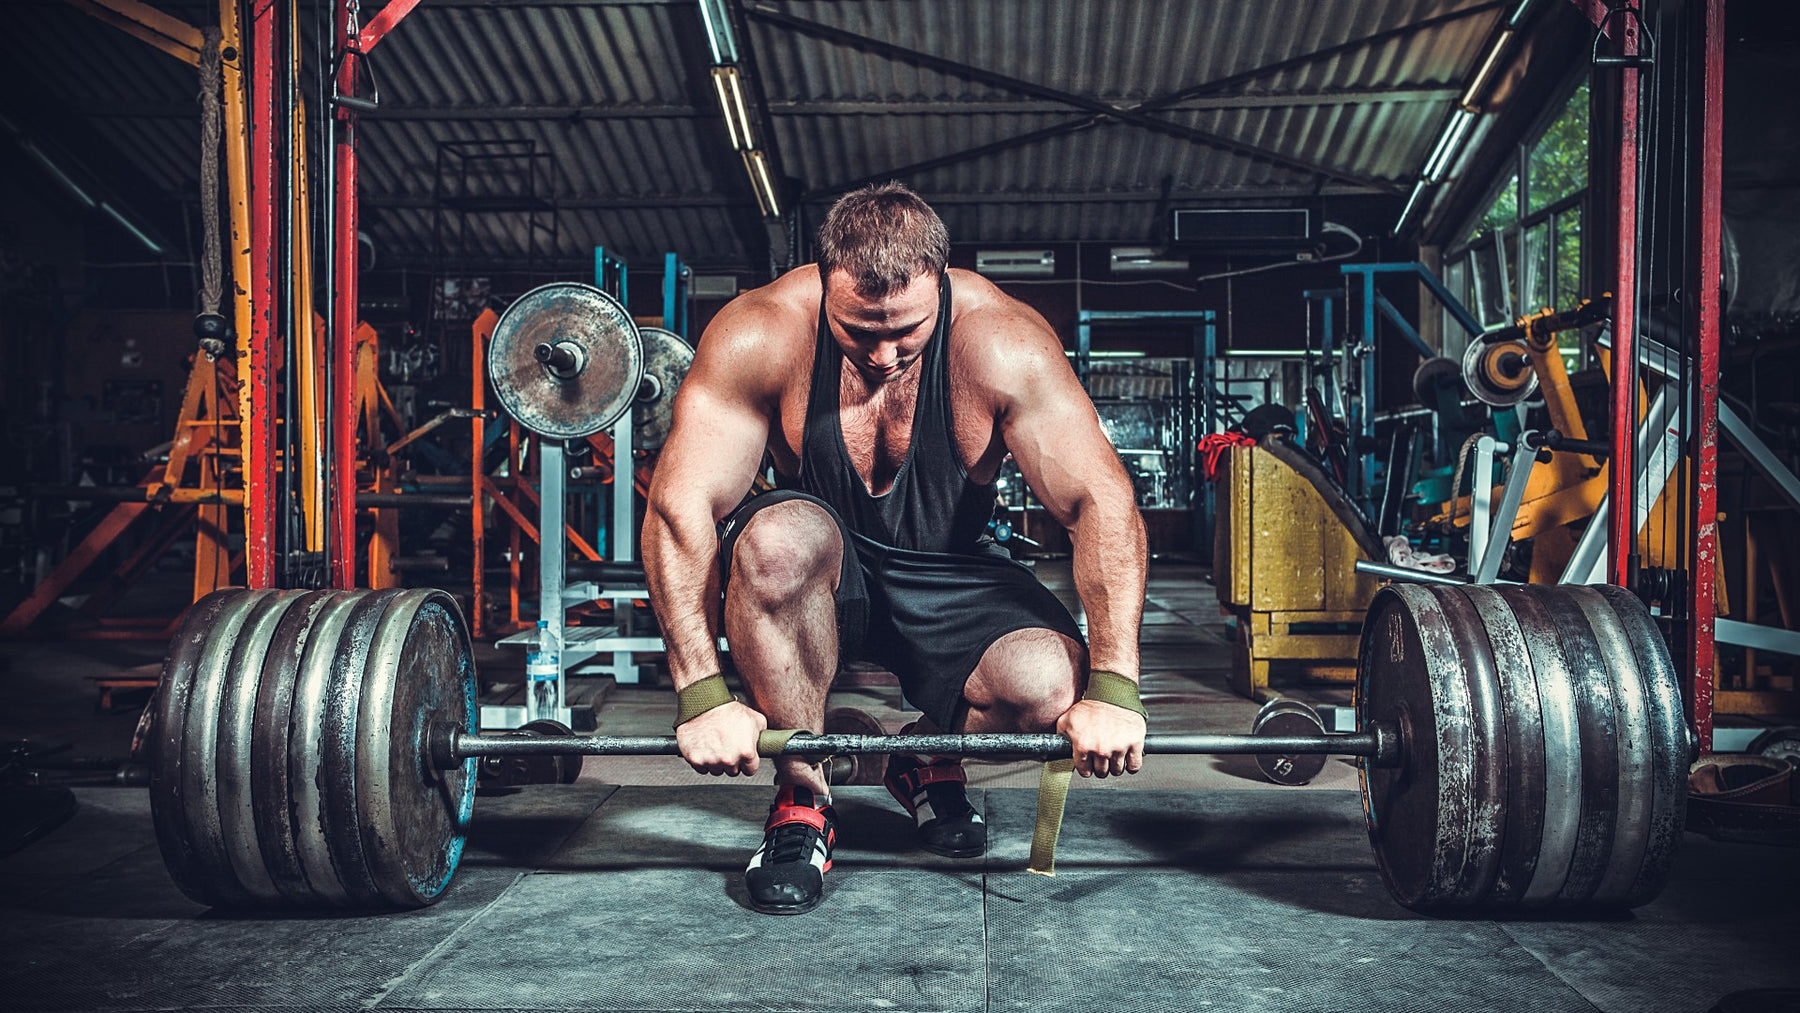 Deadlift Strength - 5 Plateau-Busting Exercises for a Big Pull